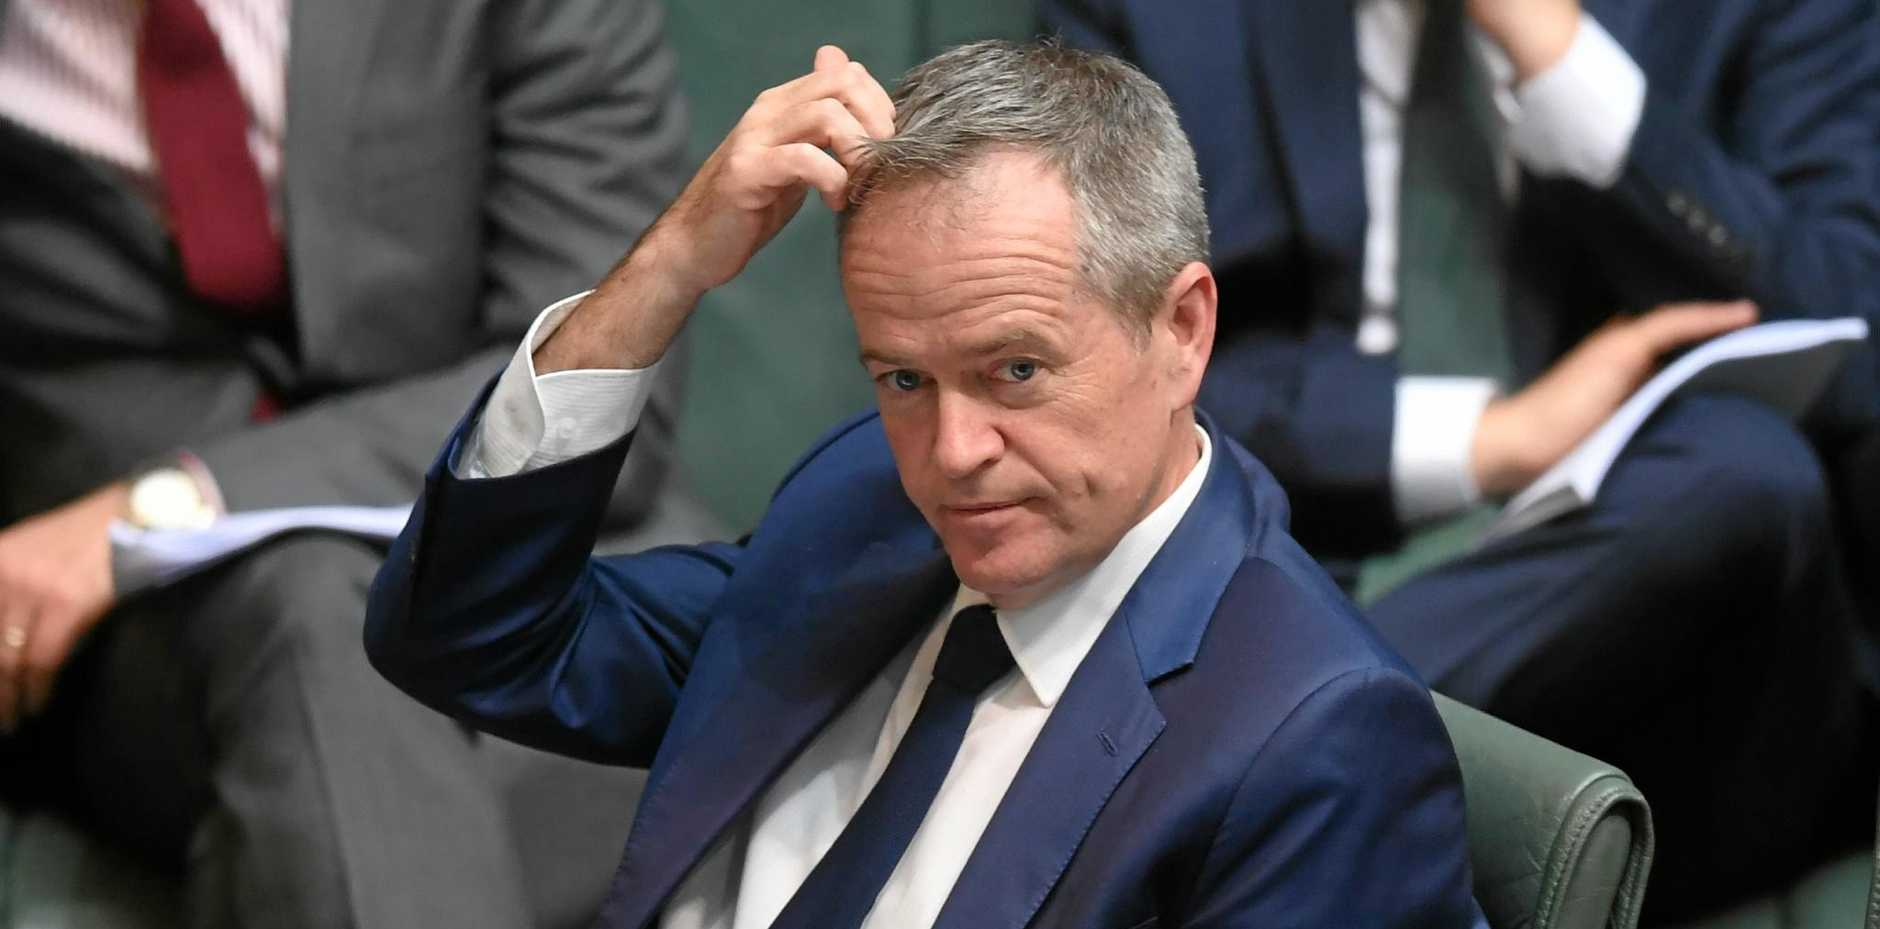 Opposition Leader Bill Shorten says Labor will work with the government to overhaul fire safety standards.